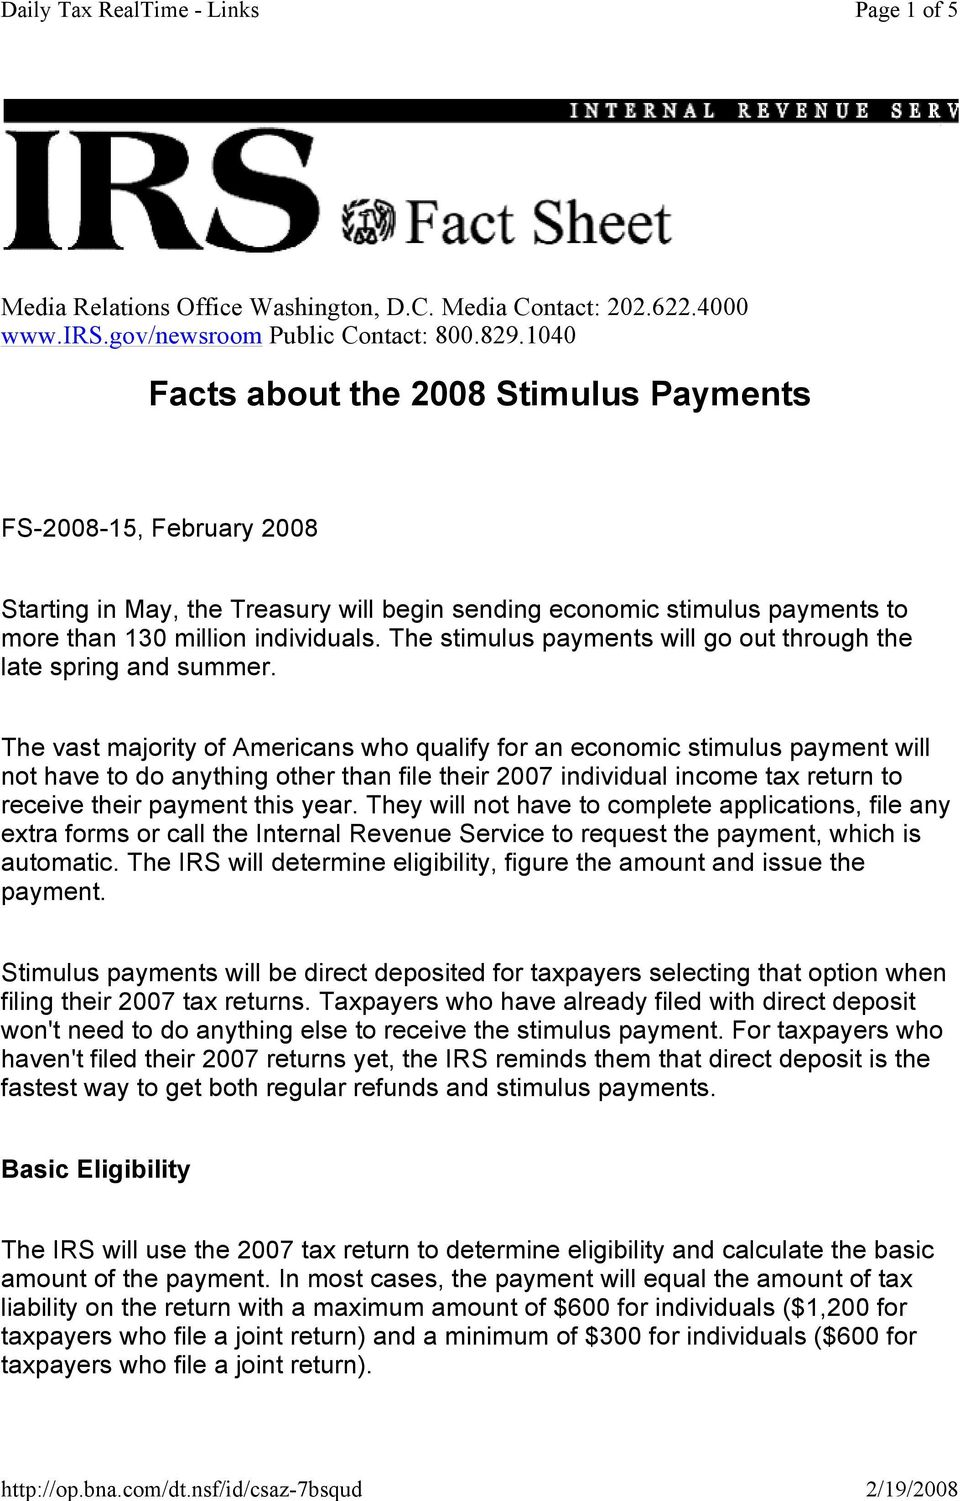 The stimulus payments will go out through the late spring and summer.